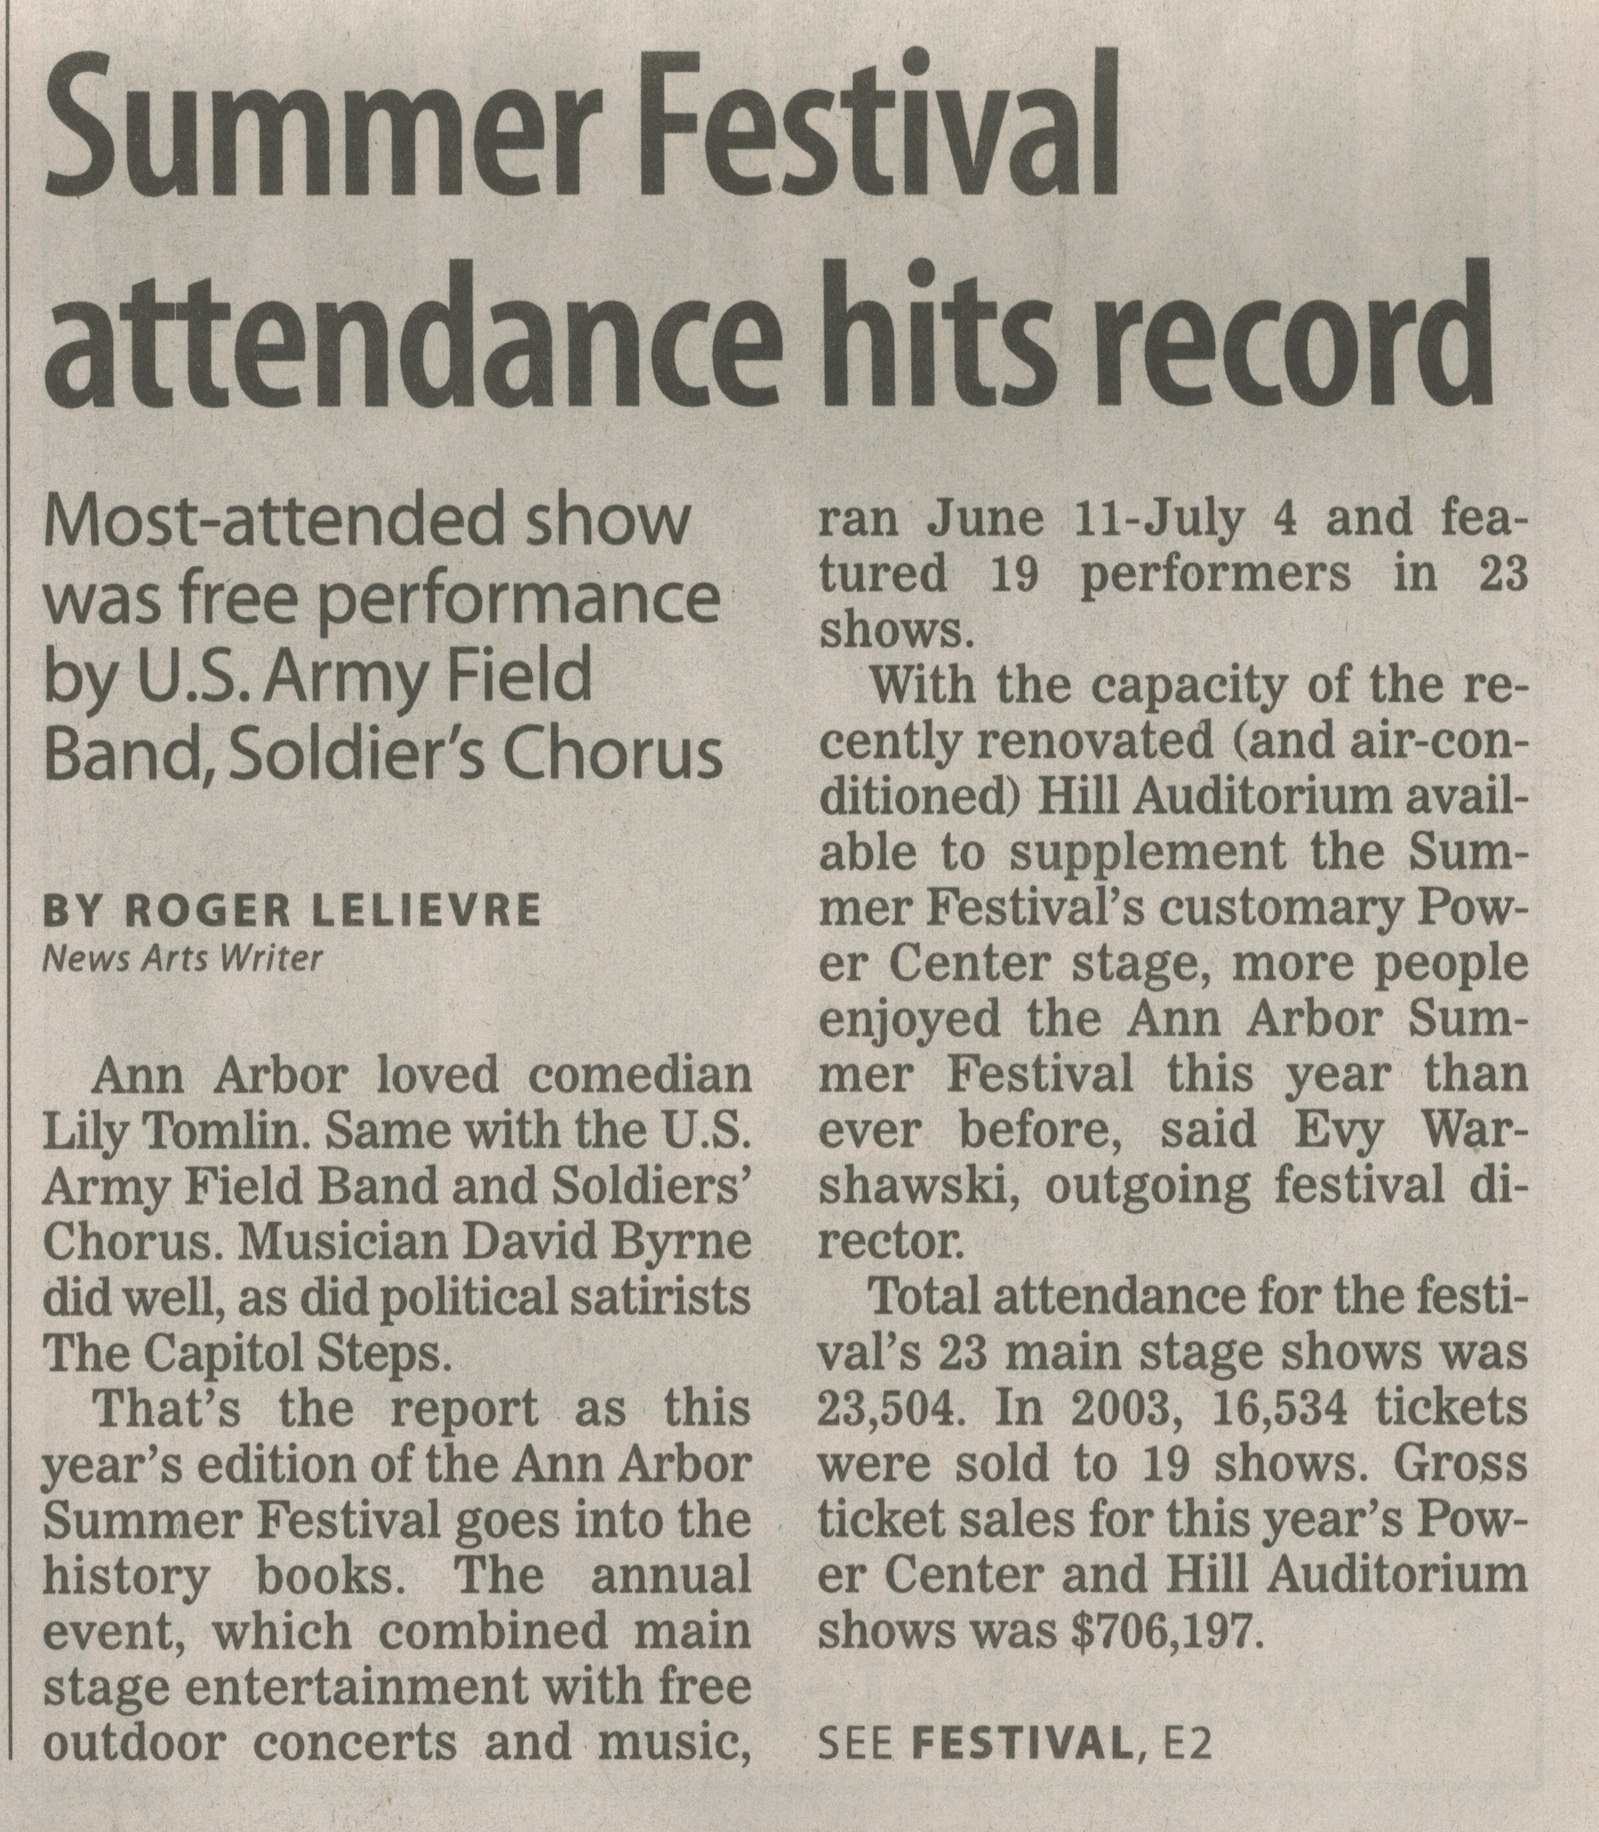 Summer Festival attendance hits record image